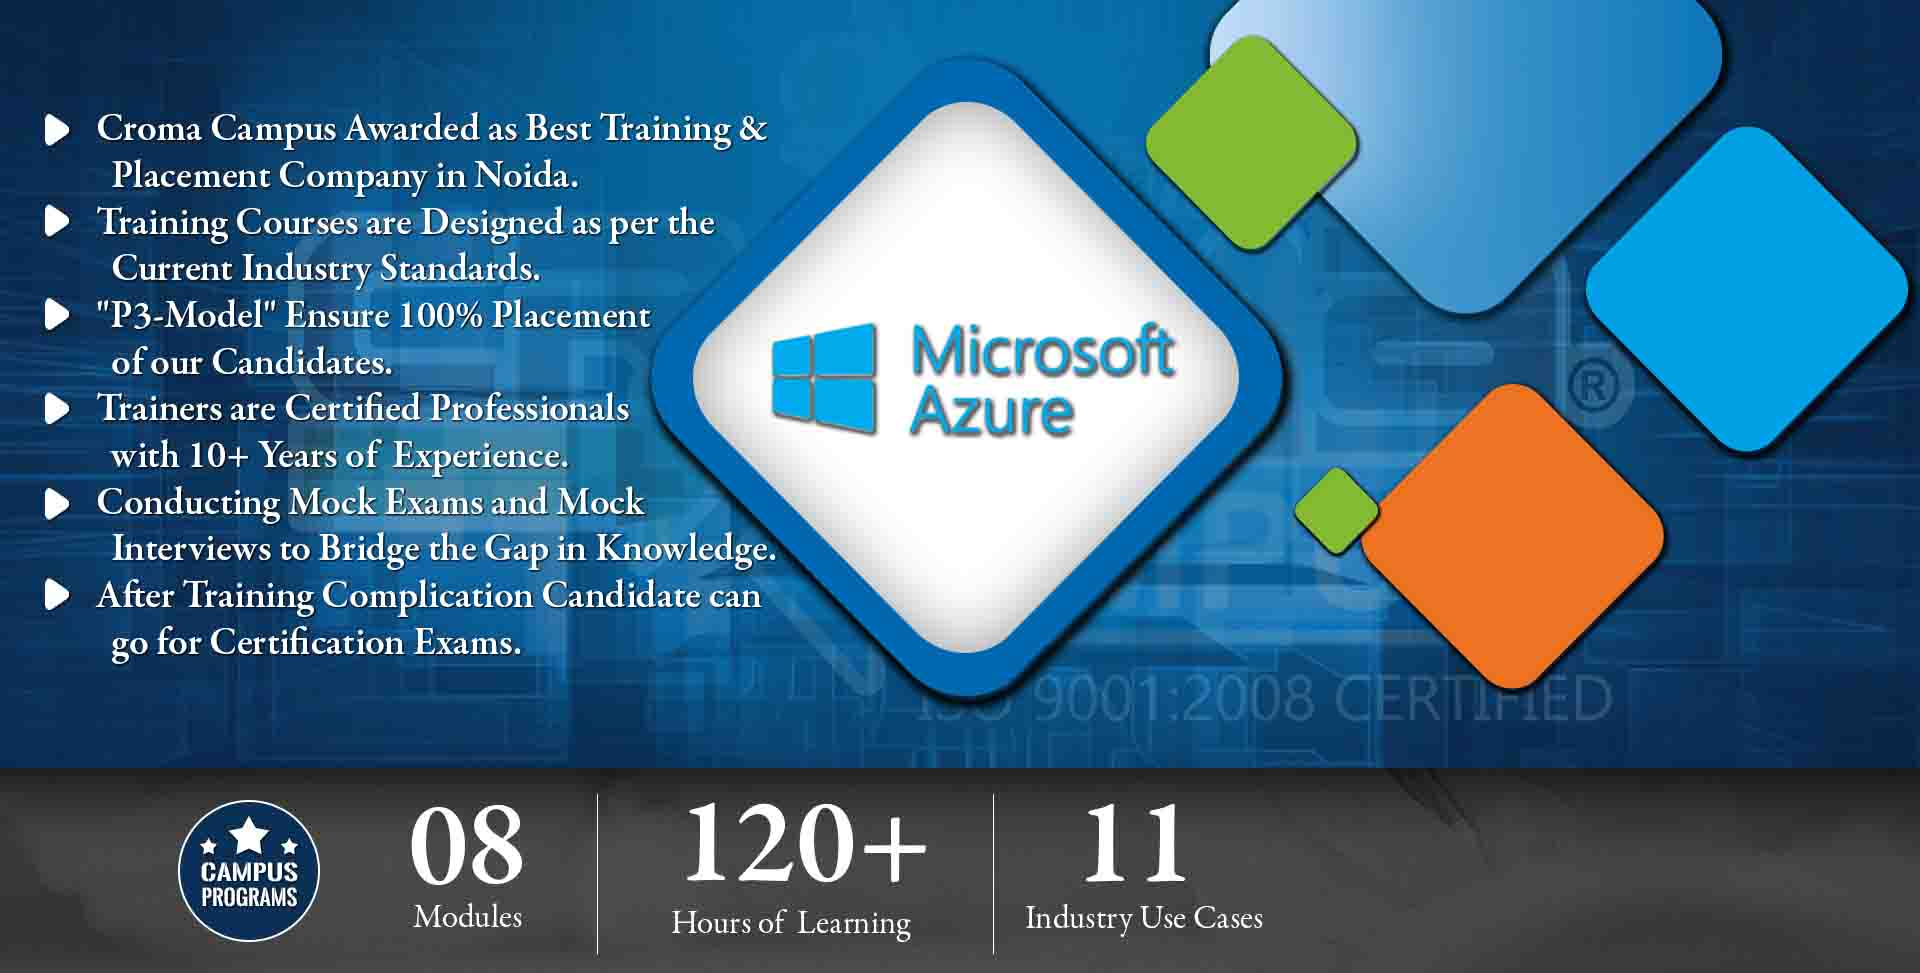 Microsoft azure training in noida best microsoft azure training microsoft azure training in noida croma campus view sample certificate xflitez Gallery